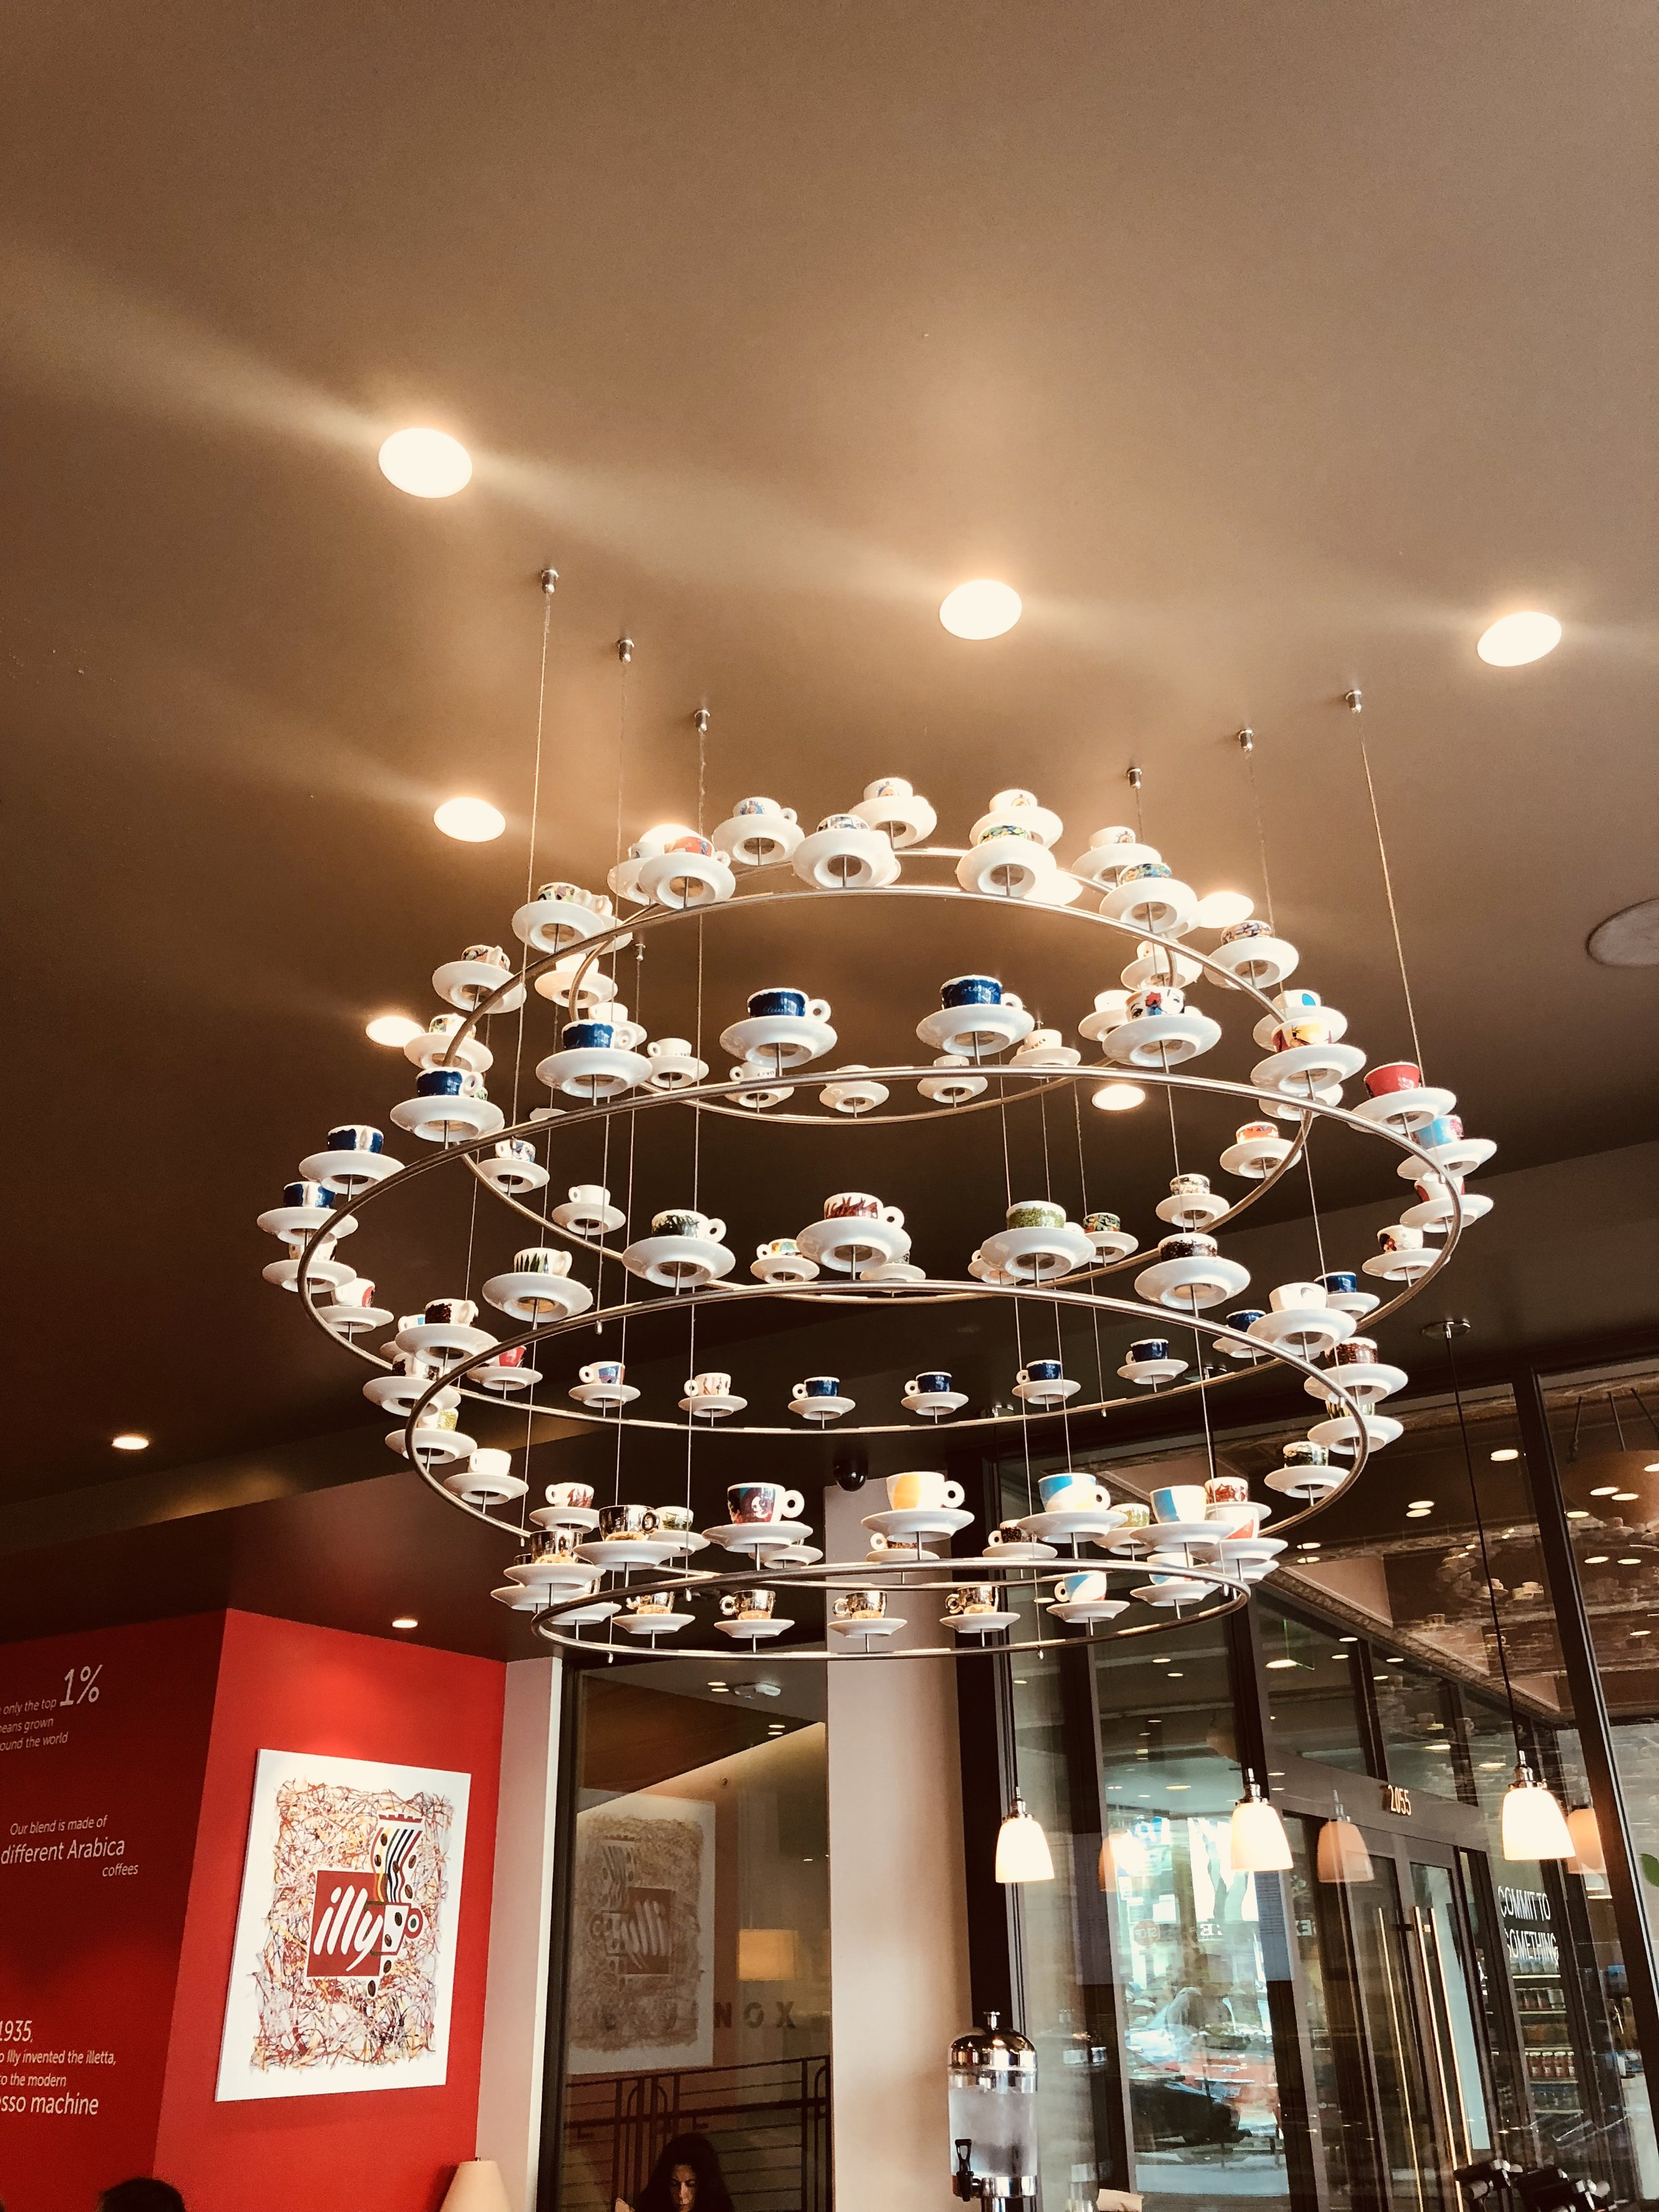 Illy Caffe and its trademark espresso chandelier